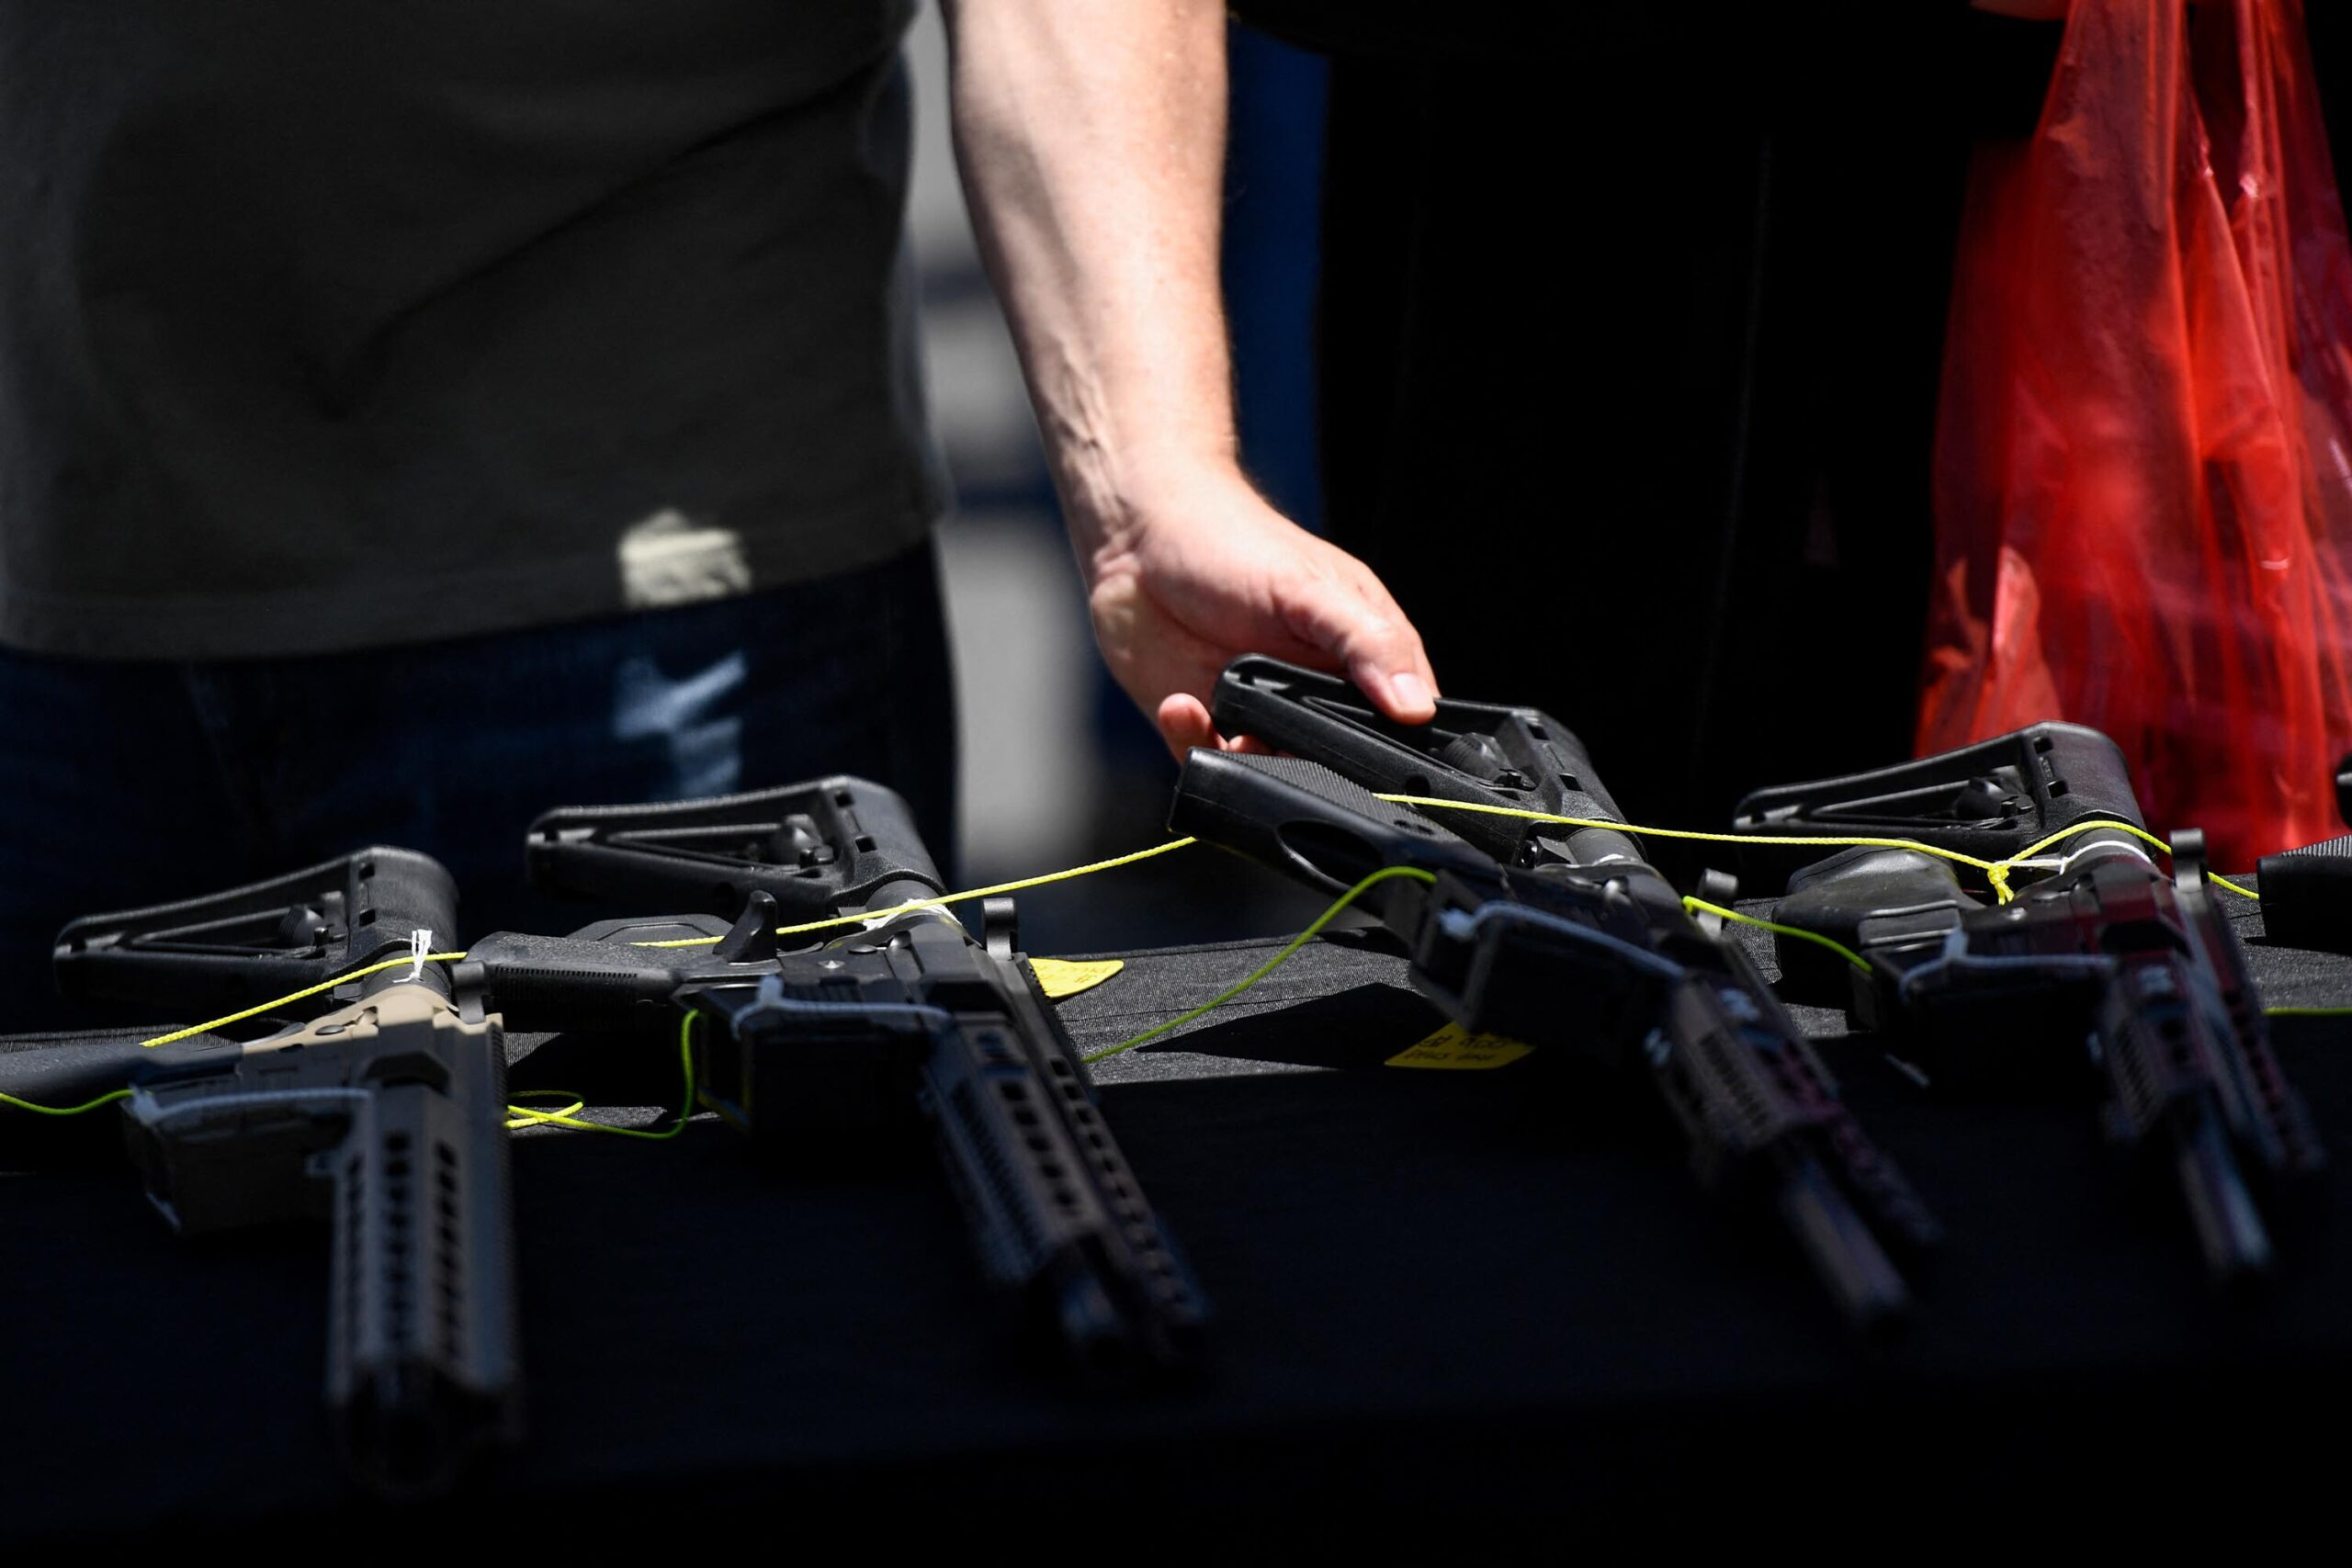 <i>PATRICK T. FALLON/AFP/Getty Images</i><br/>A customer examines a California-compliant AR-15 style rifle displayed for sale at a vendor booth at a gun show in Costa Mesa